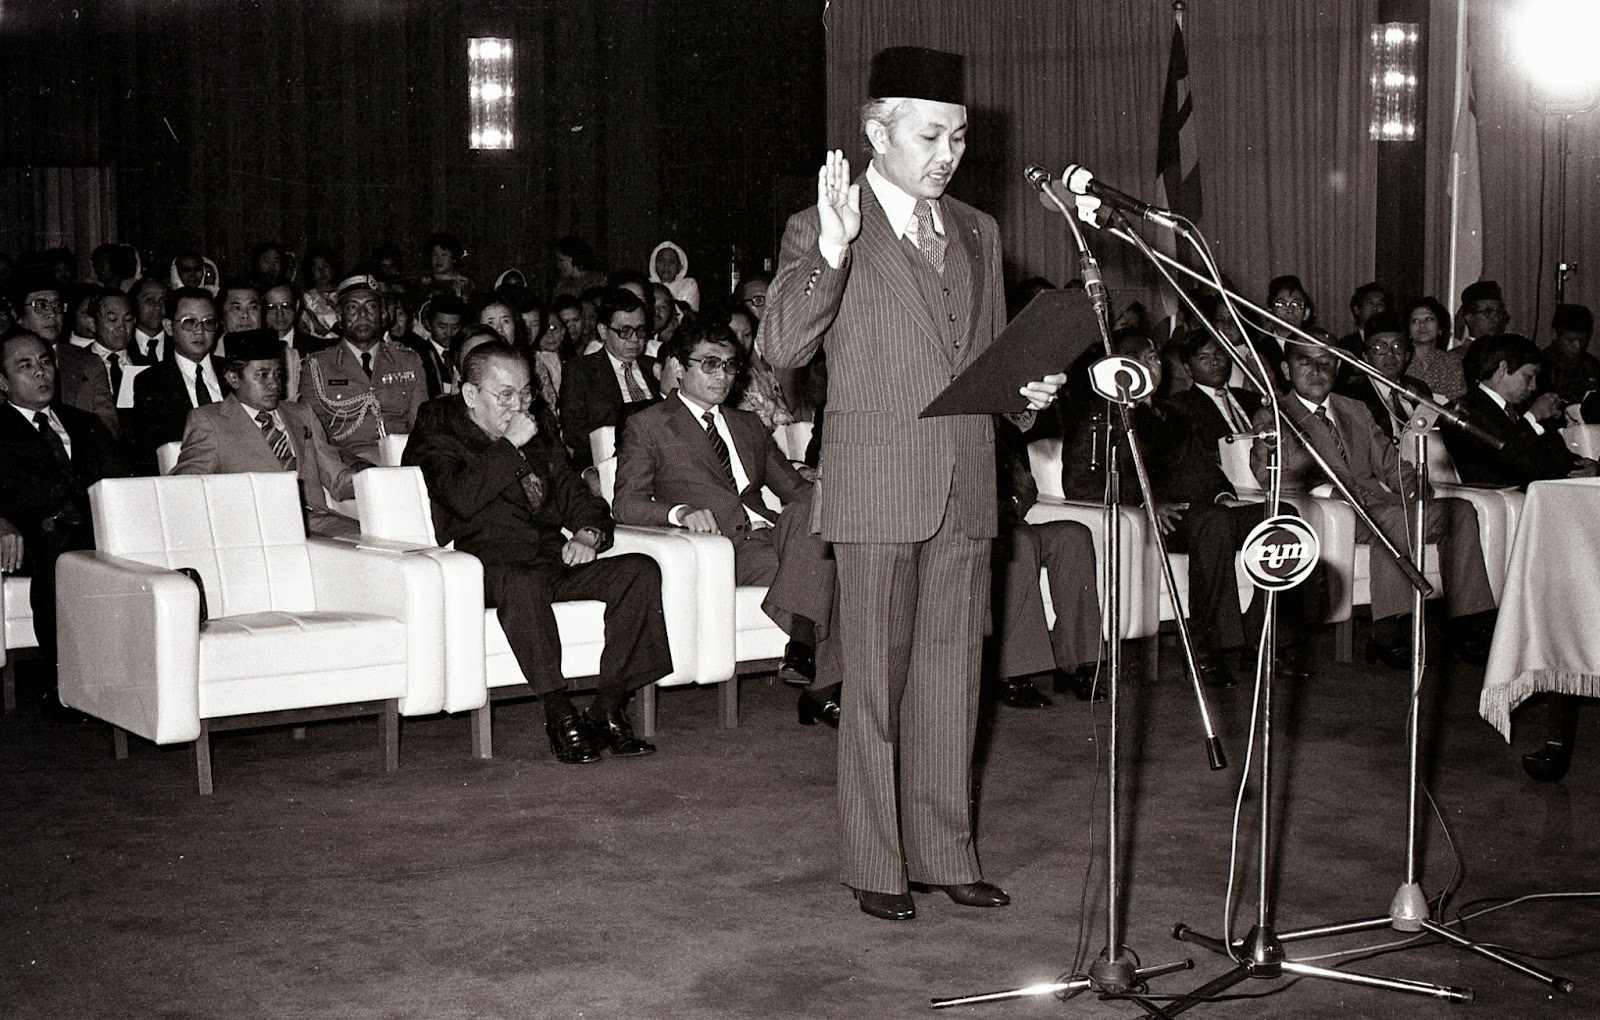 Taib served as the Chief Minister of Sarawak for 33 years.